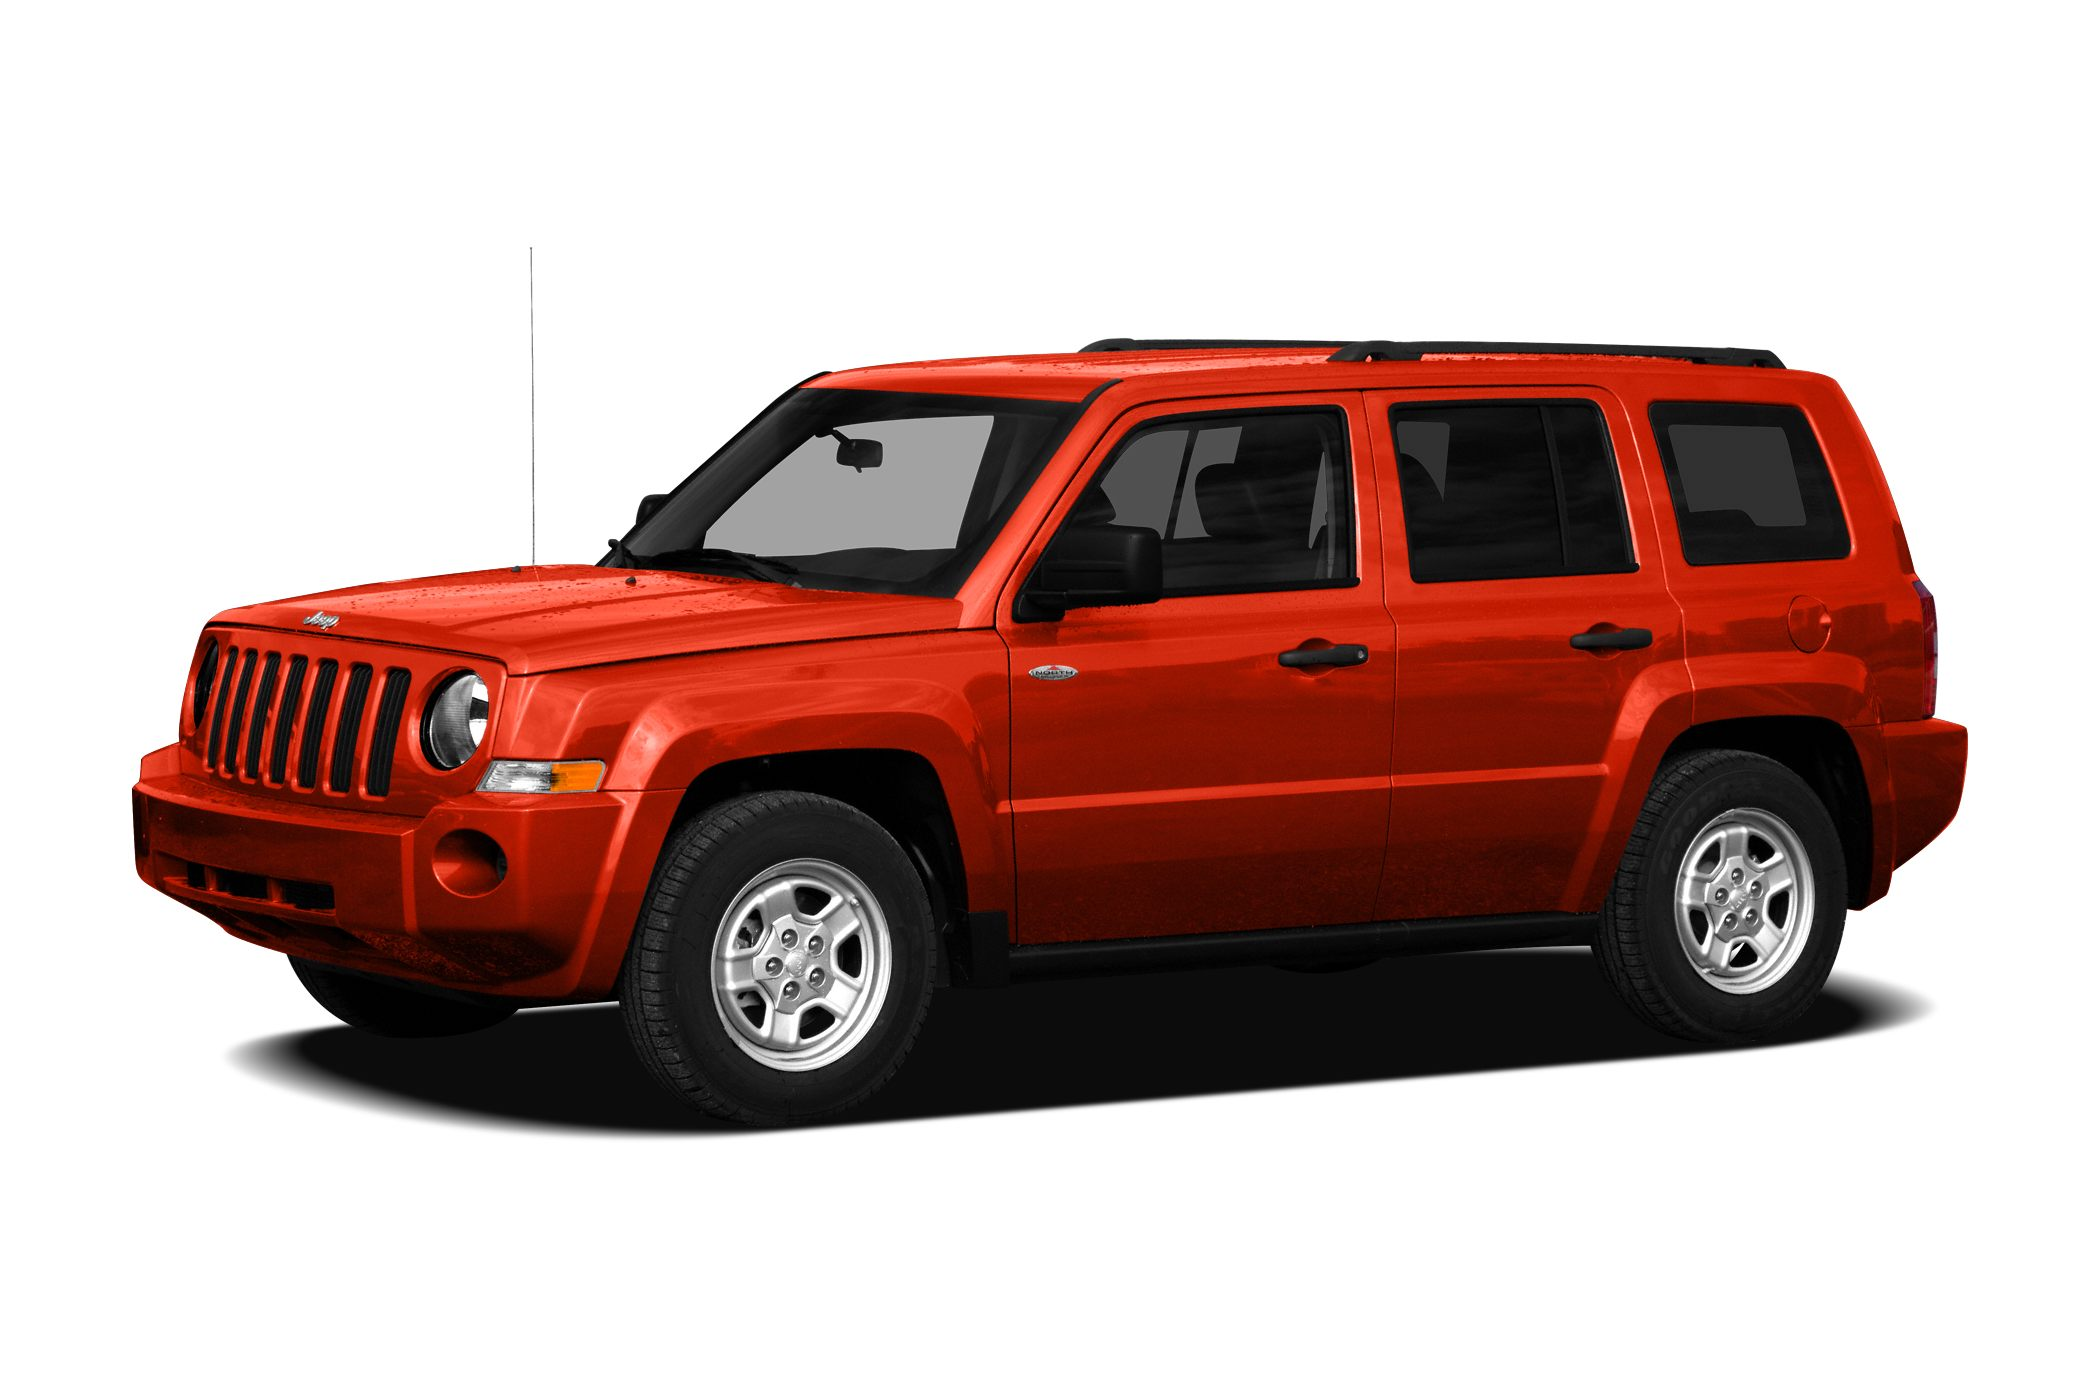 2010 Jeep Patriot Sport SUV for sale in Billings for $12,550 with 38,150 miles.